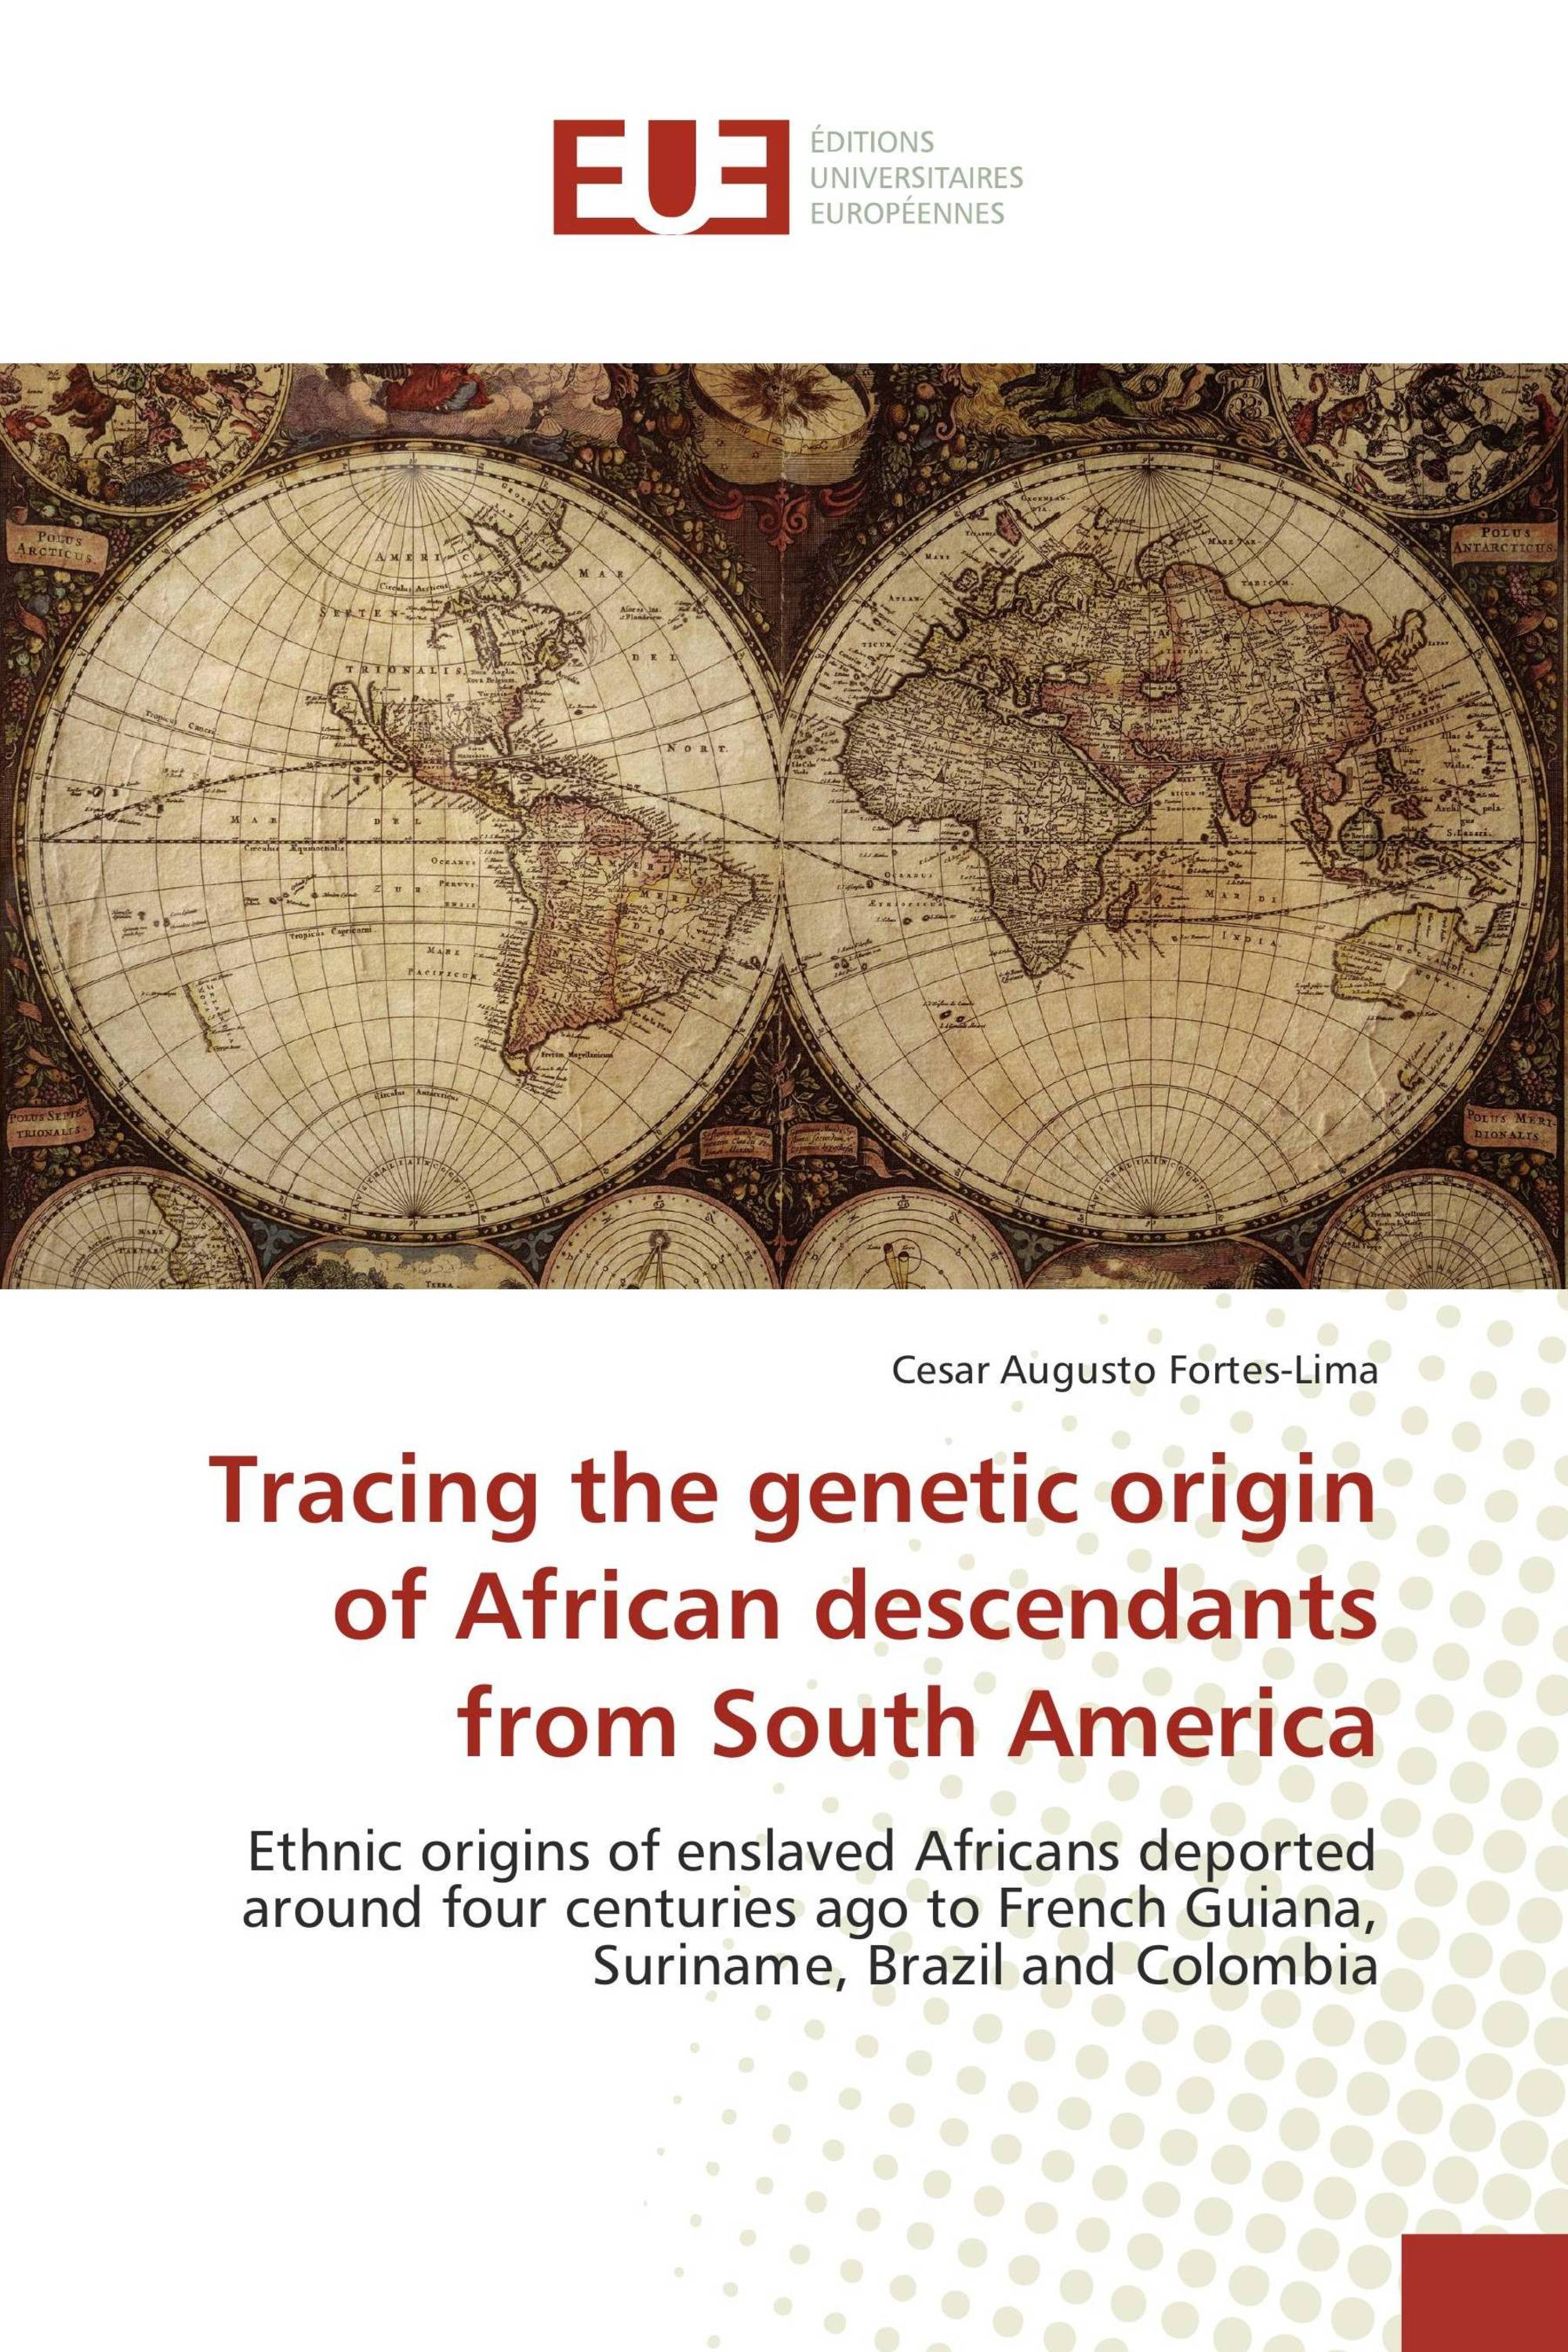 Tracing the genetic origin of African descendants from South America